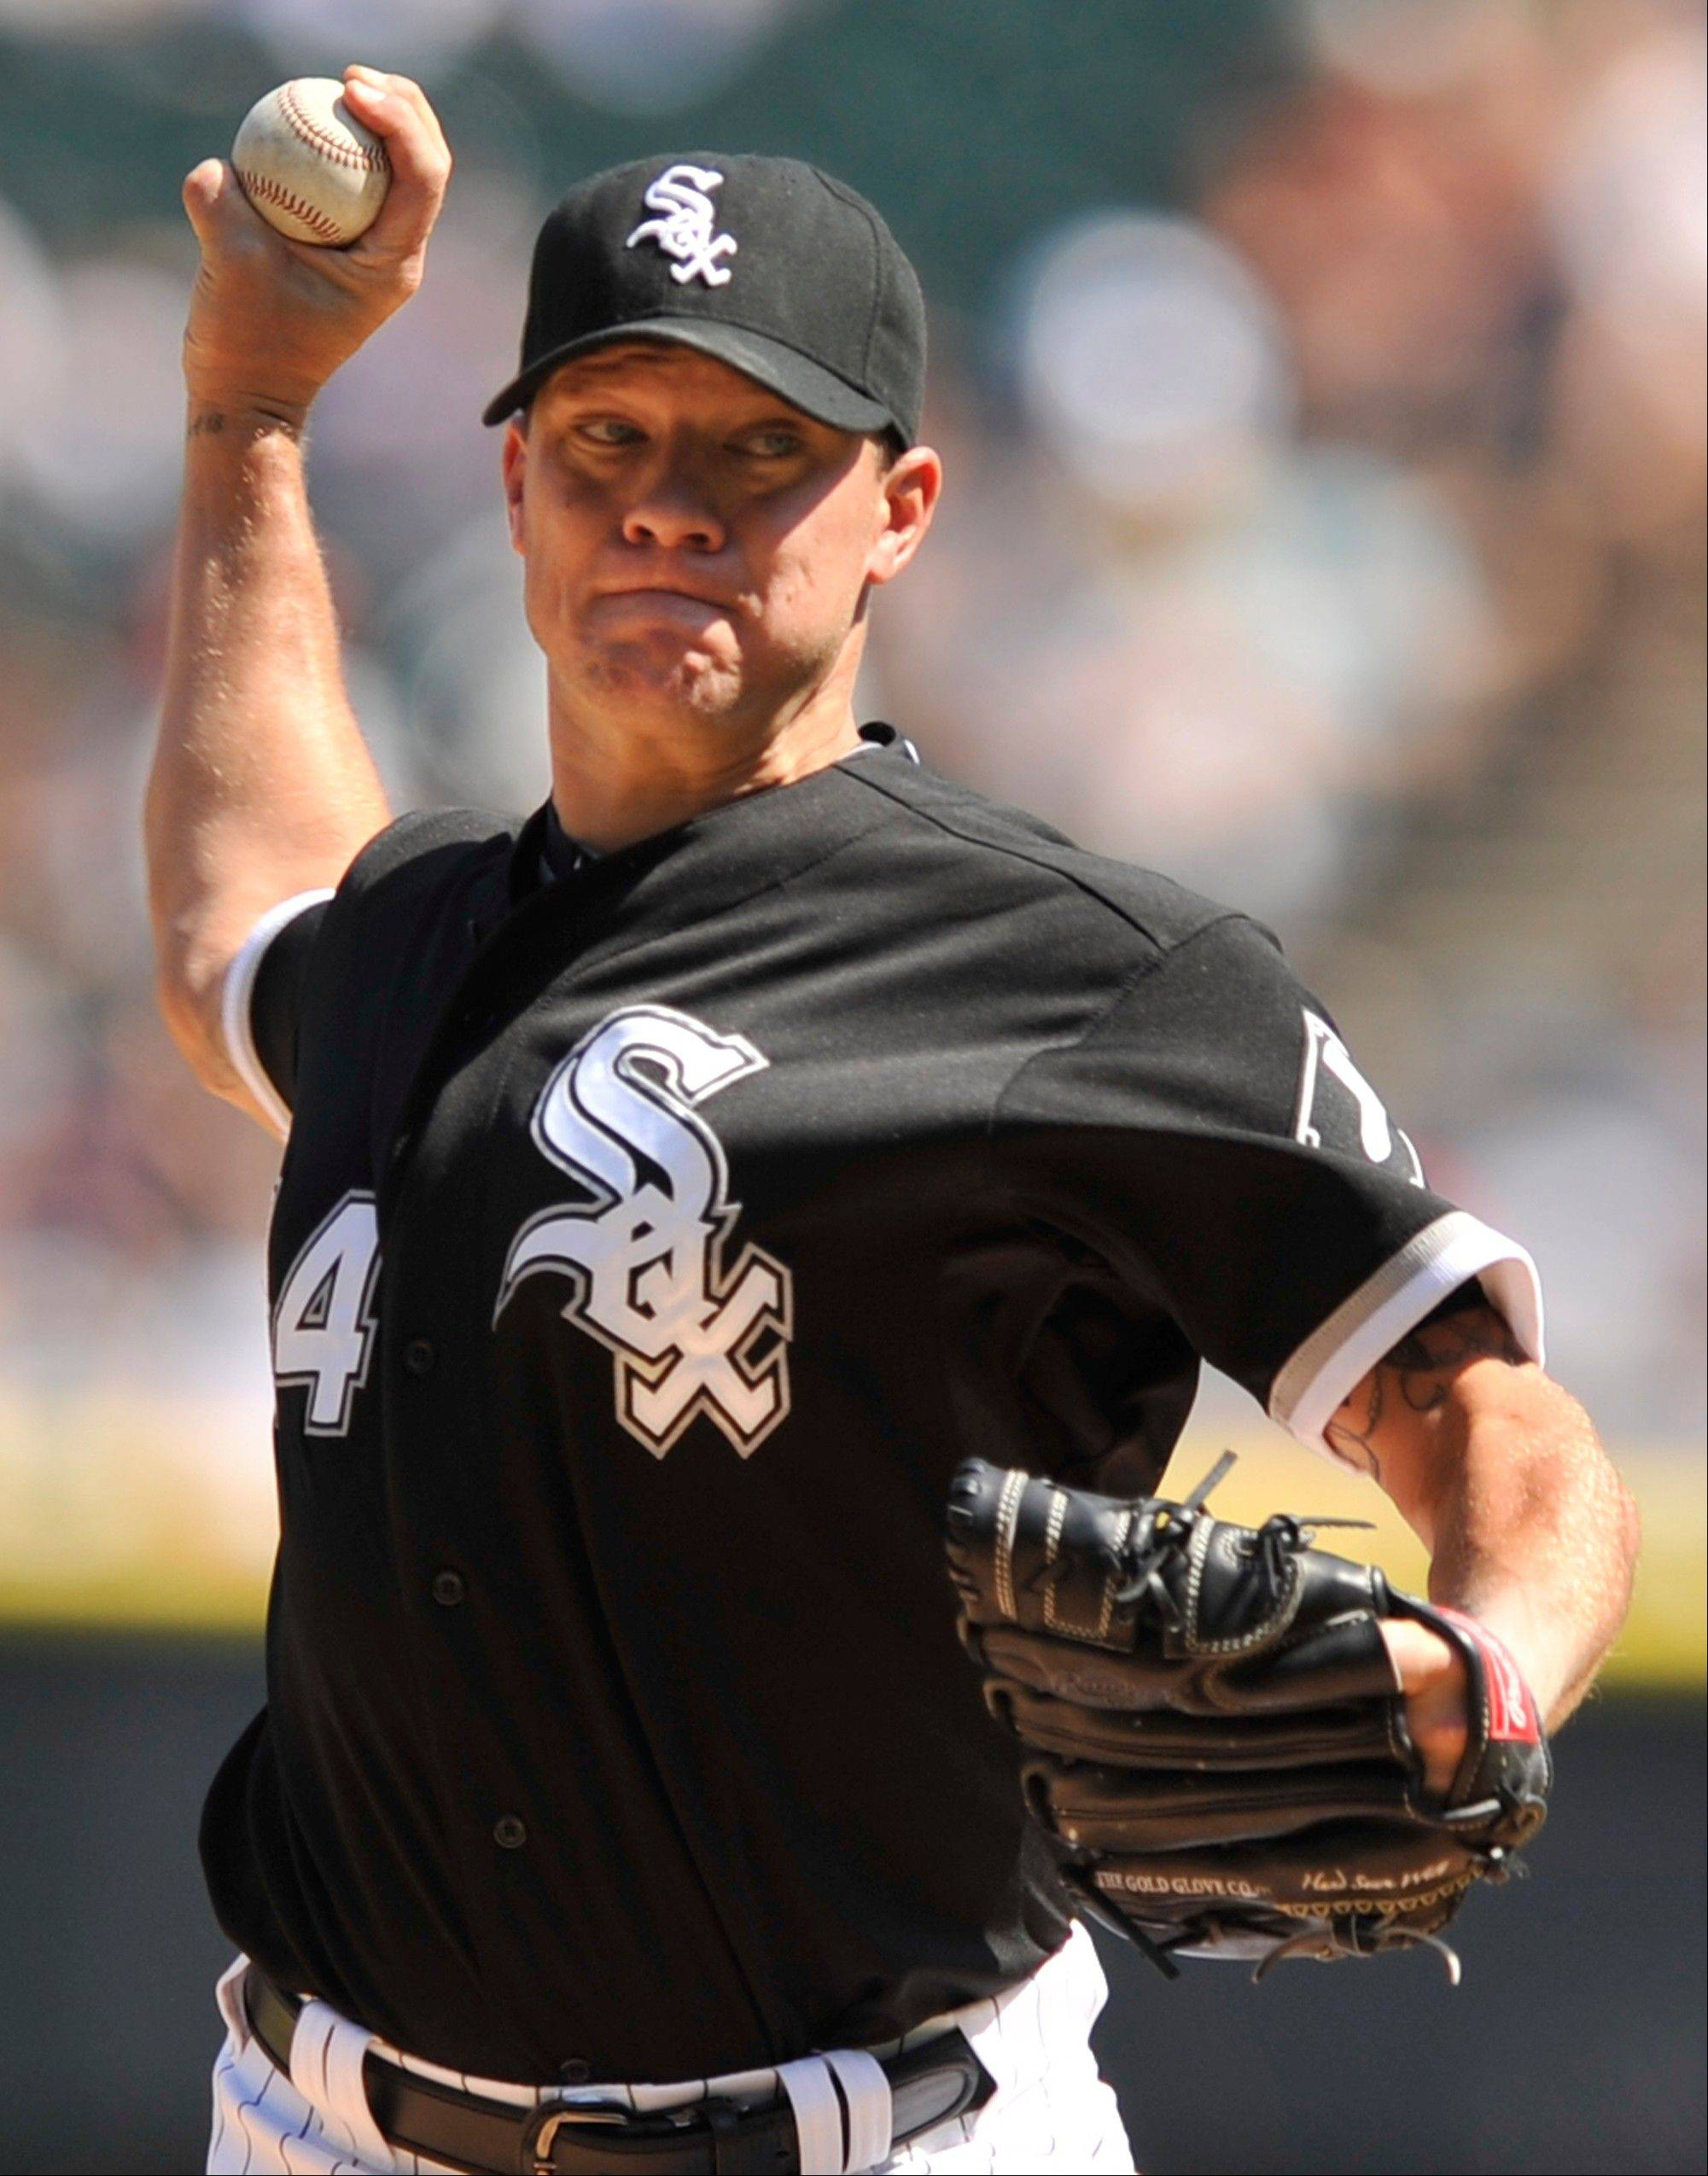 It figures to be an interesting week for the White Sox, but Jake Peavy and the rest of the starting rotation might still be around after the trade deadline.